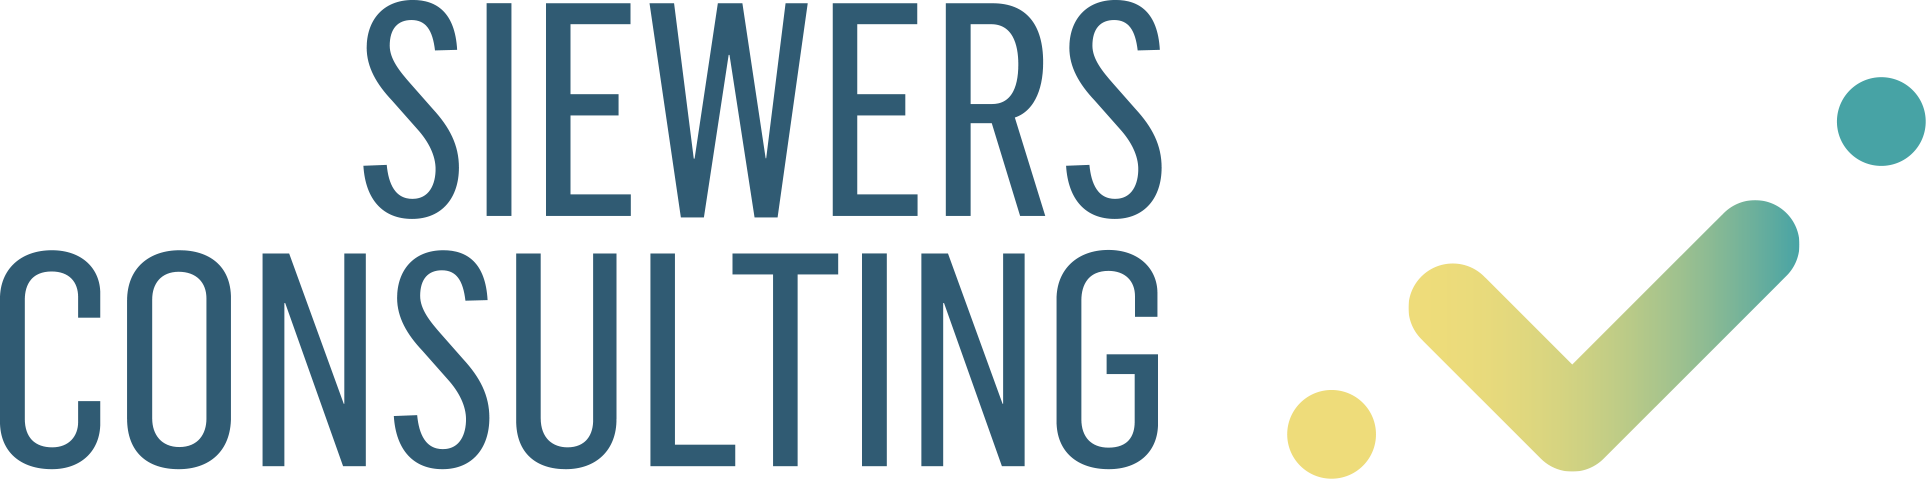 Siewers Consulting